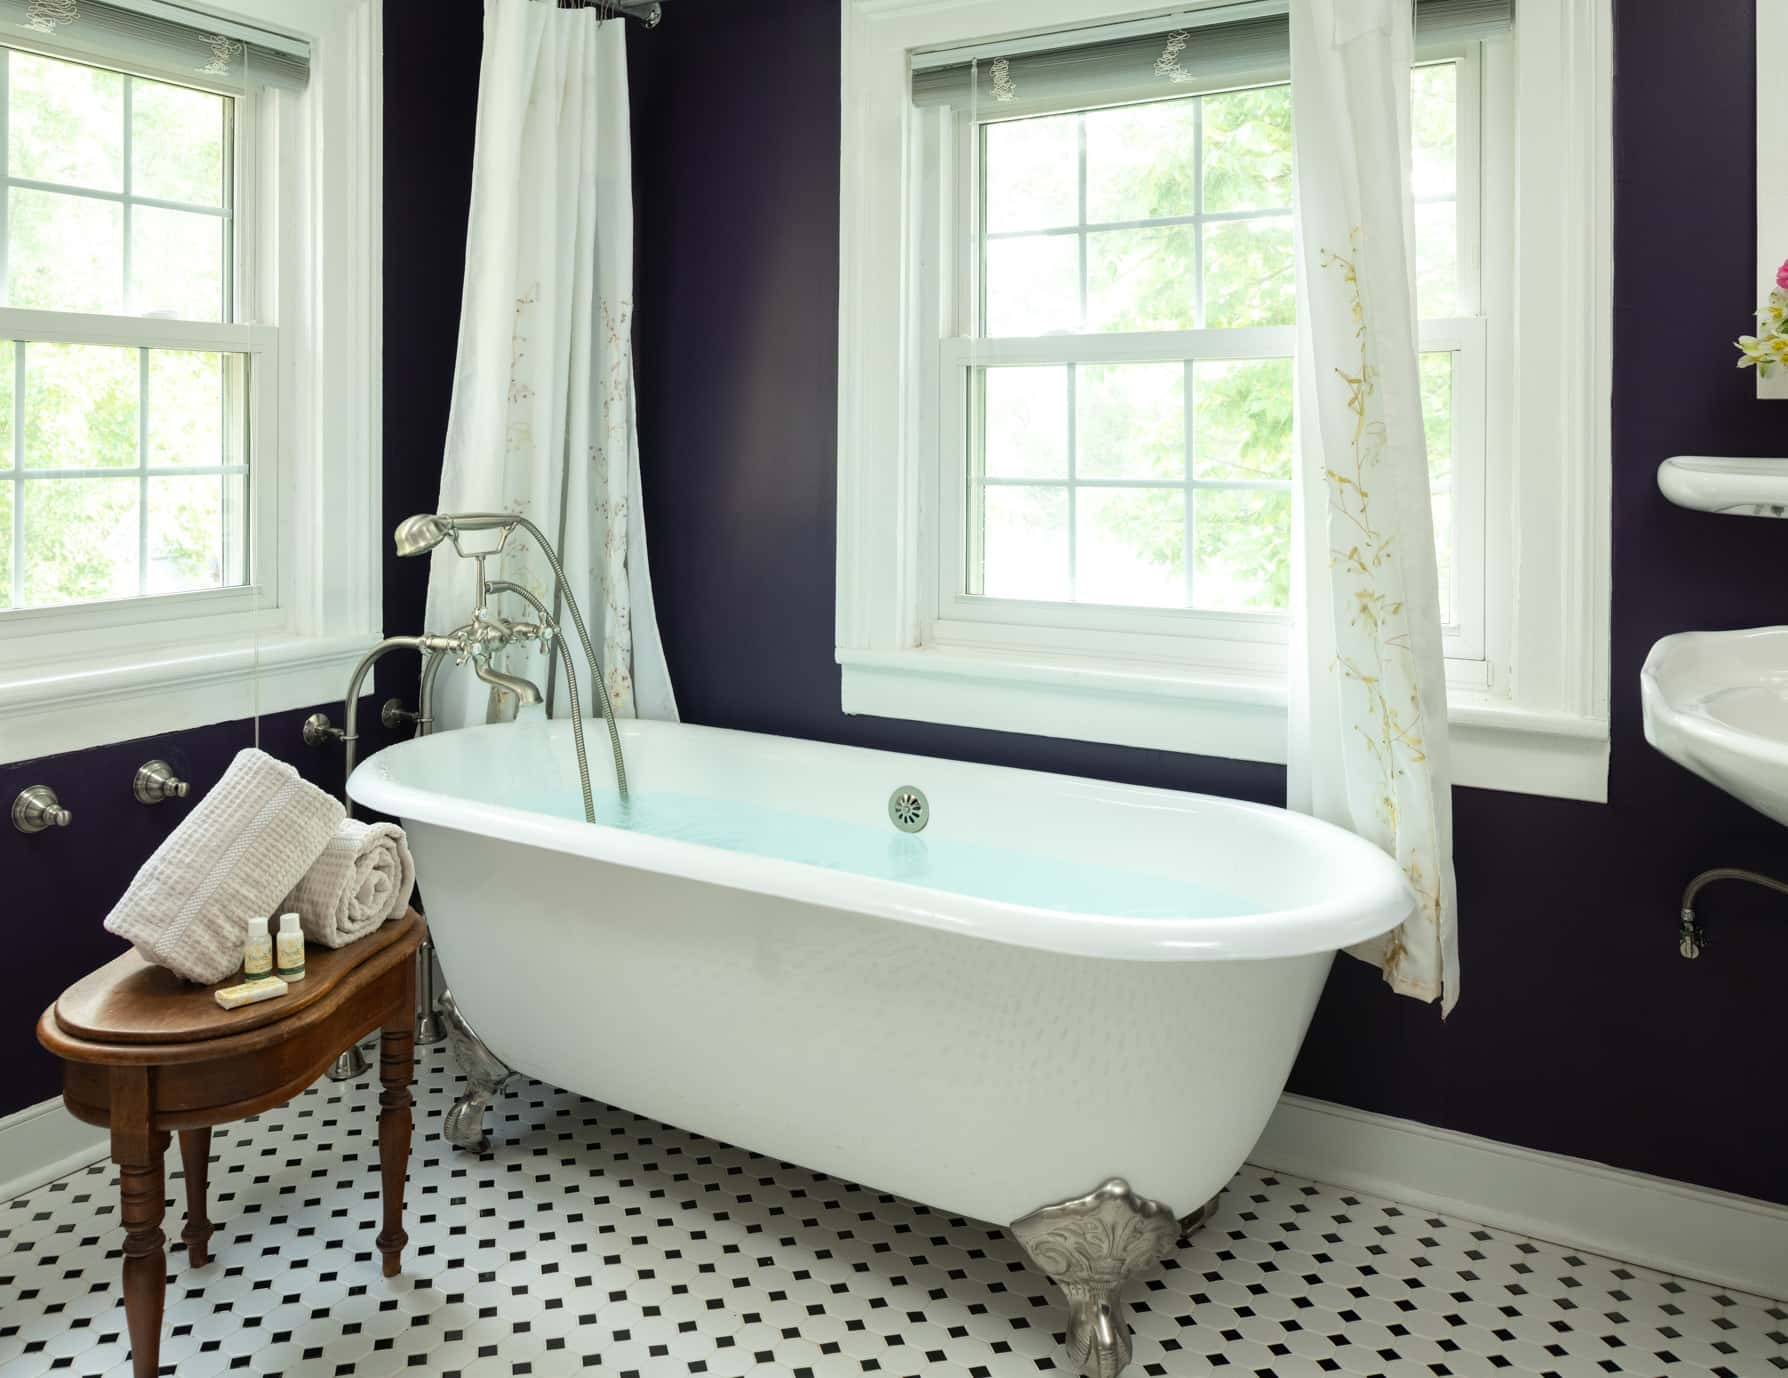 Clawfoot tub in a bathroom with garden views